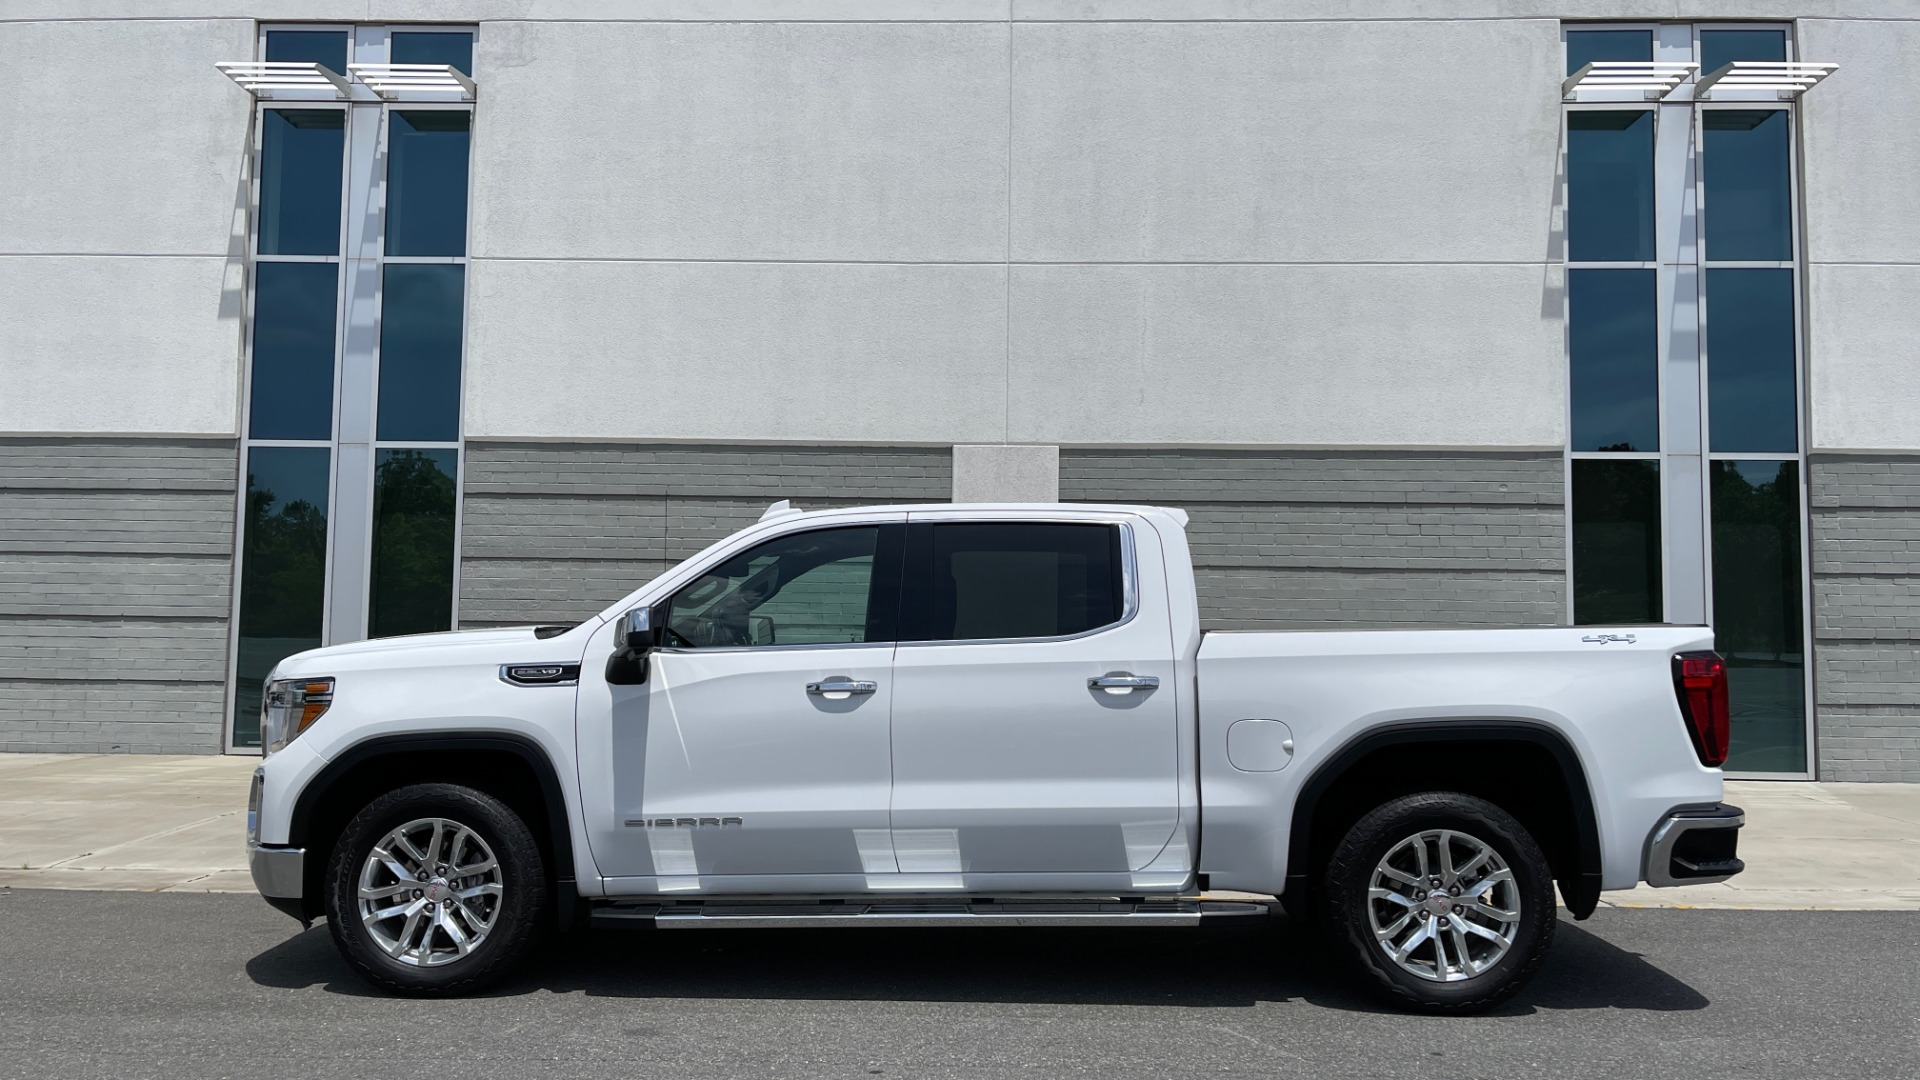 Used 2019 GMC SIERRA 1500 SLT 4X4 CREWCAB / 5.3L V8 / 8-SPD AUTO / NAV / BOSE / REARVIEW for sale $49,999 at Formula Imports in Charlotte NC 28227 4